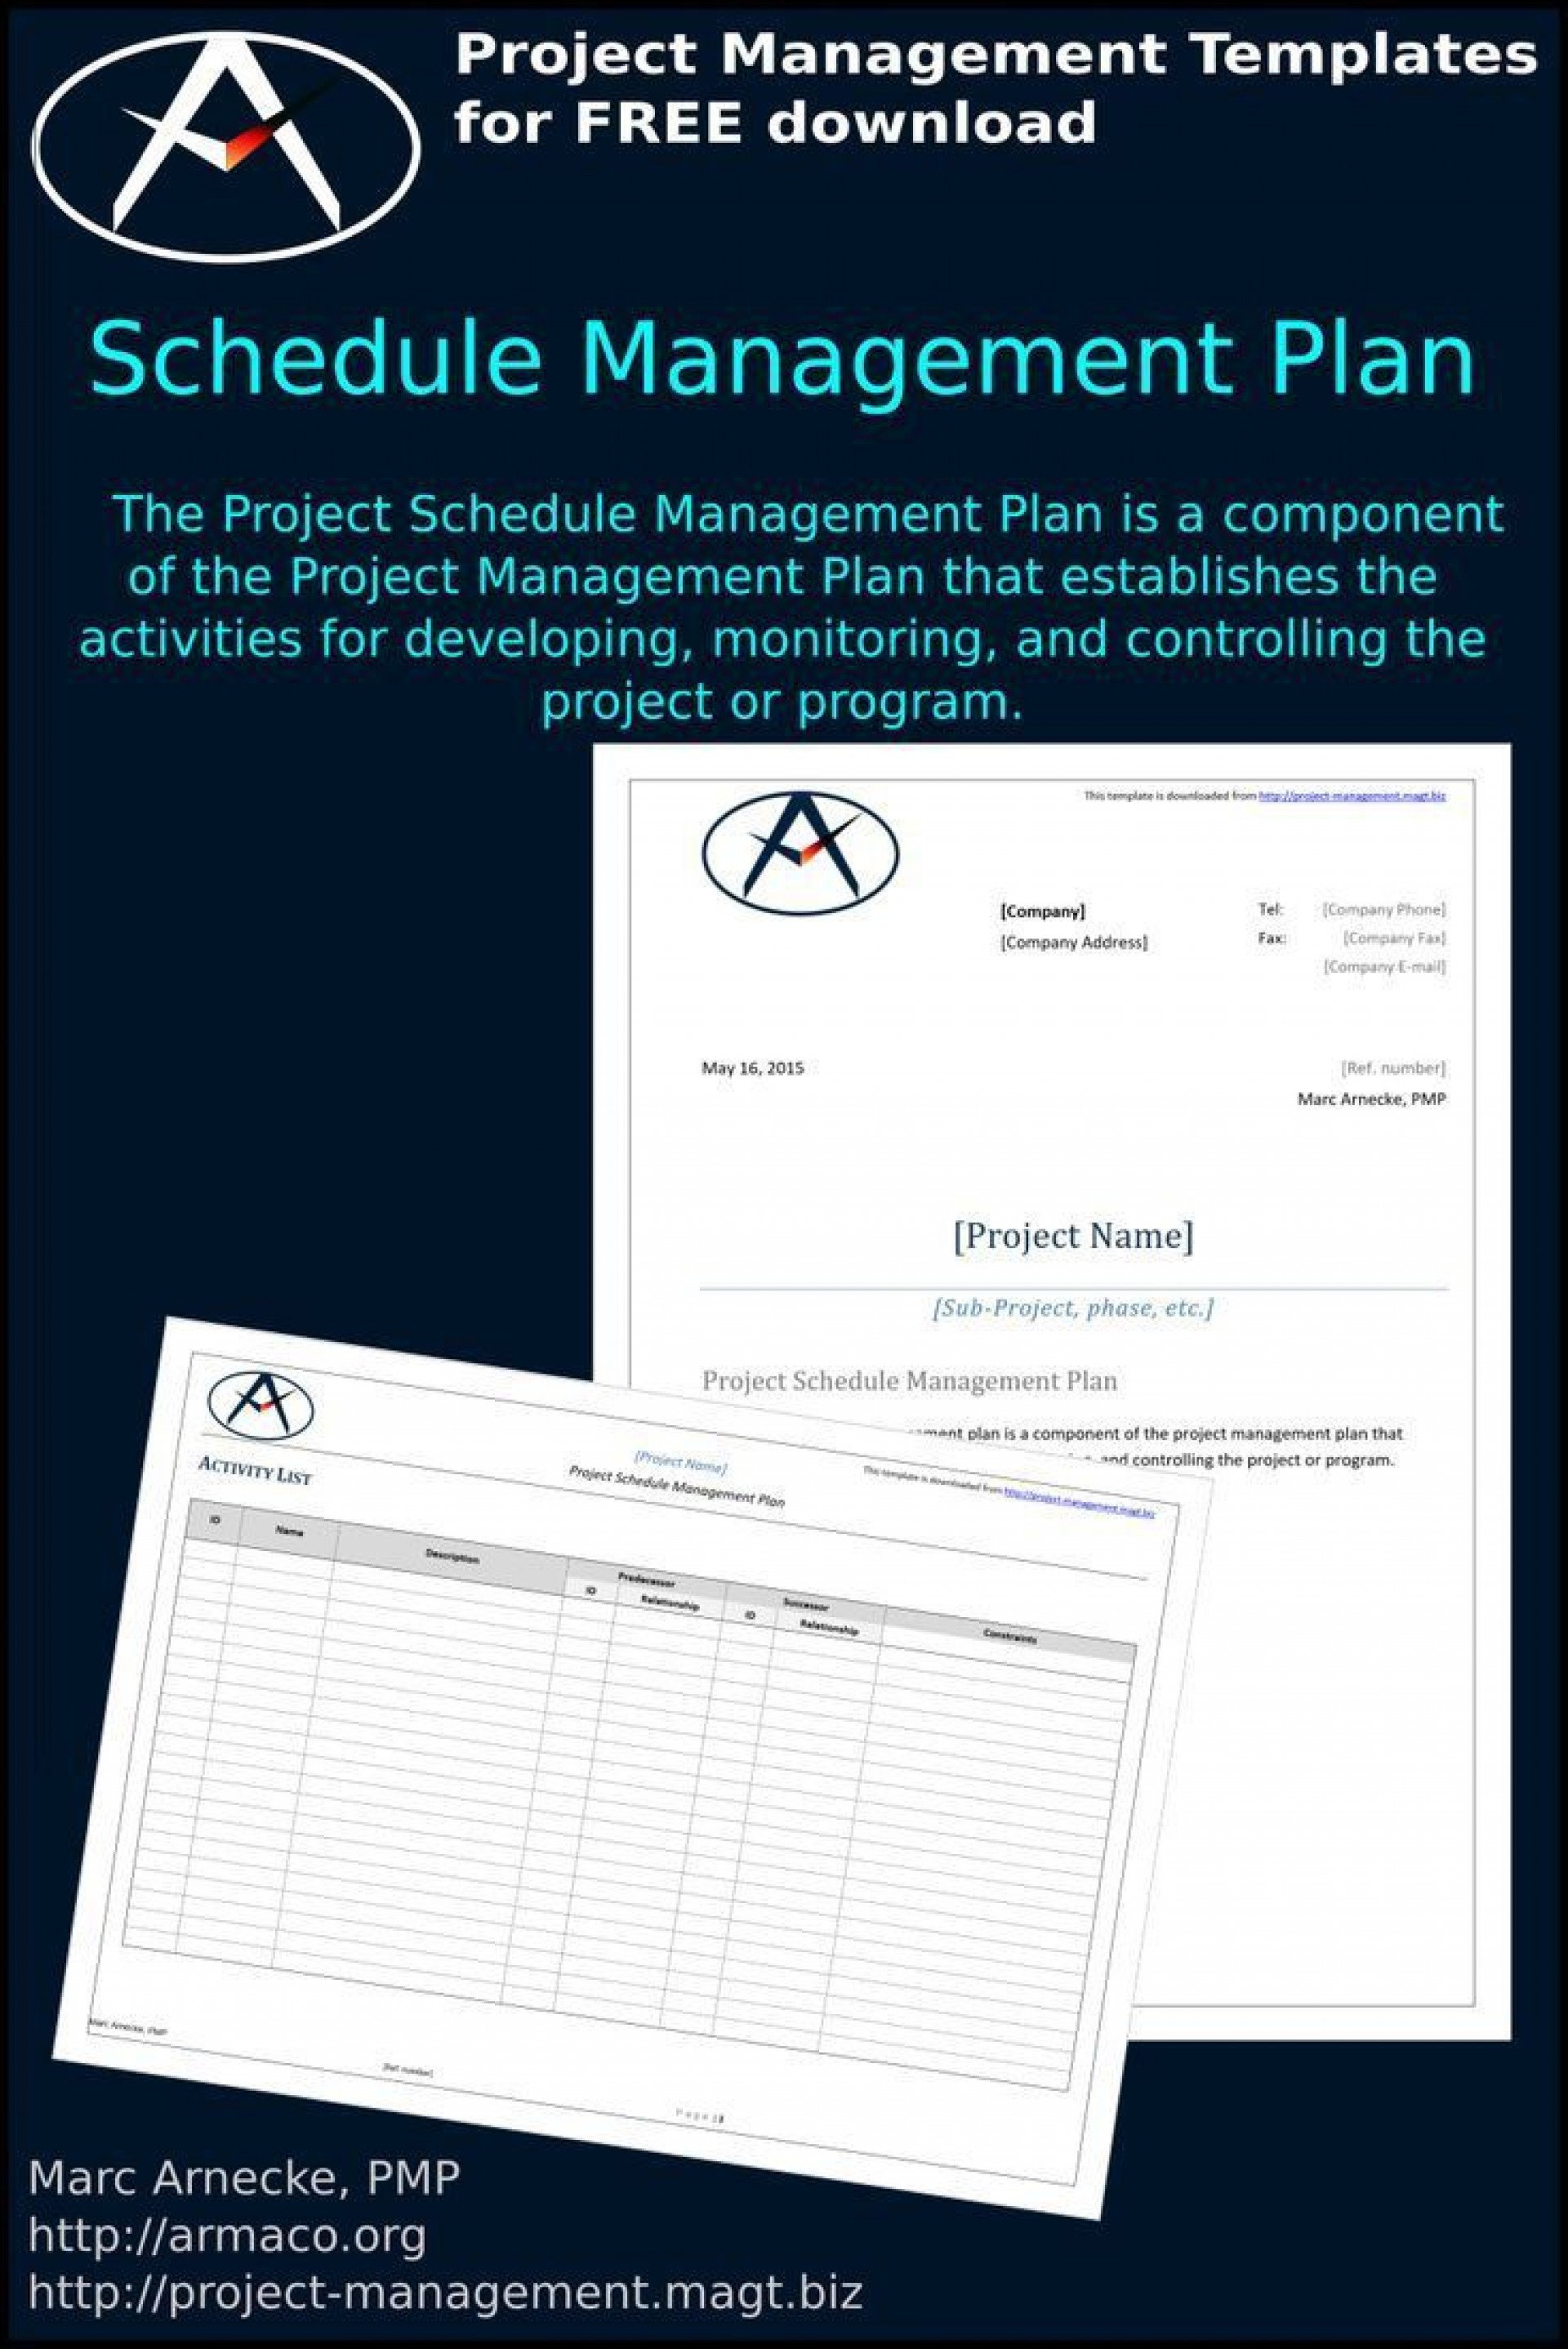 001 Marvelou Project Management Plan Template Pmbok High Def  Example Pdf Pmi1920